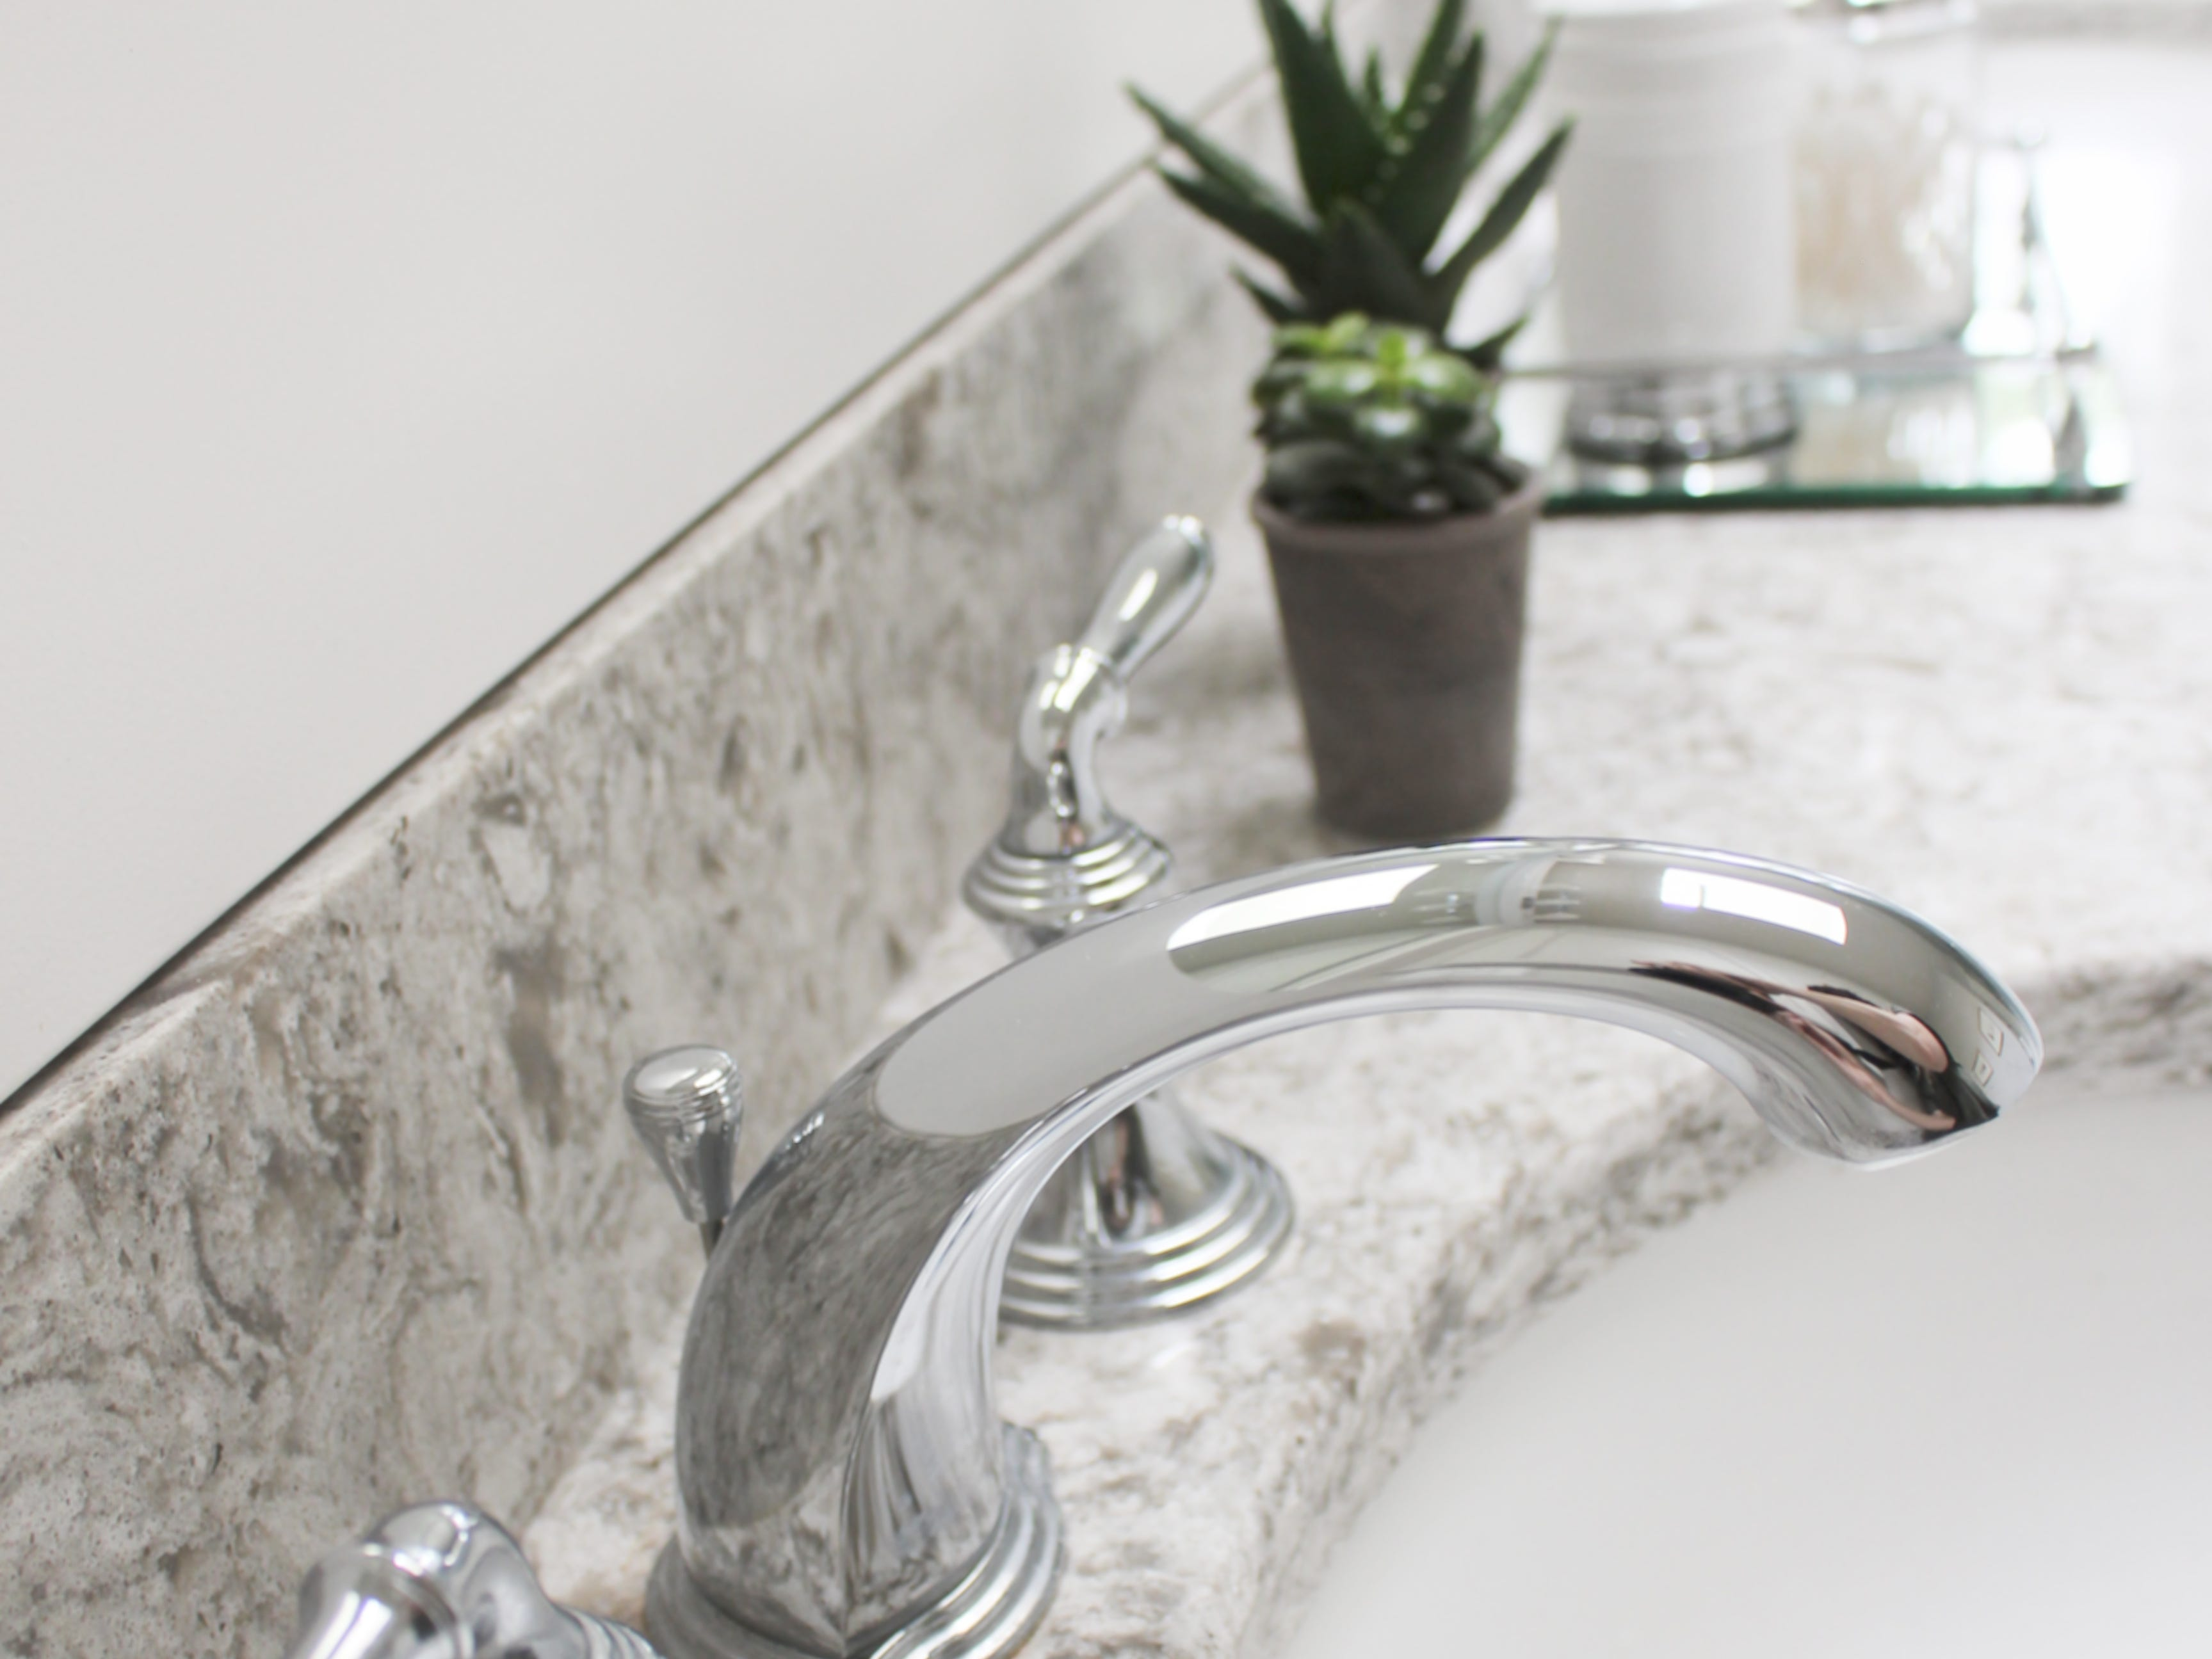 The shimmer from the glass in the mosaic tile is repeated in the polished chrome faucet.